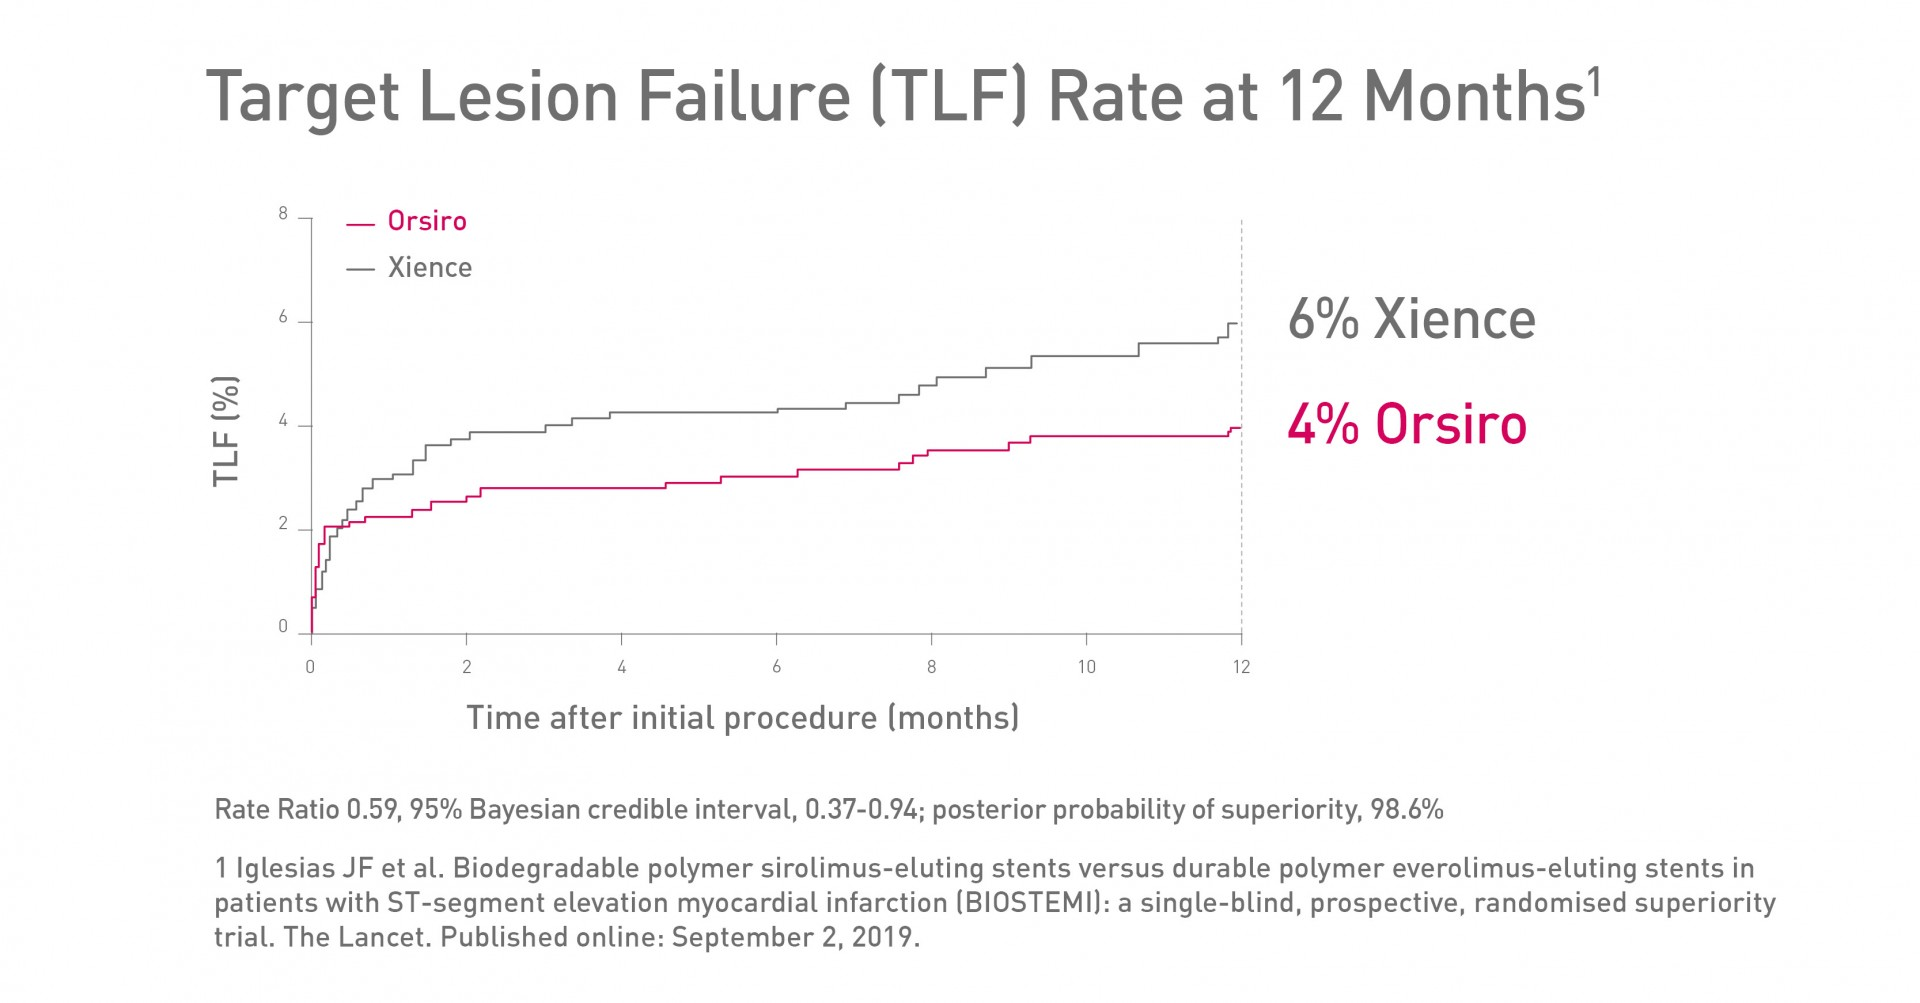 BIOSTEMI RCT TLF Rate 12 Months